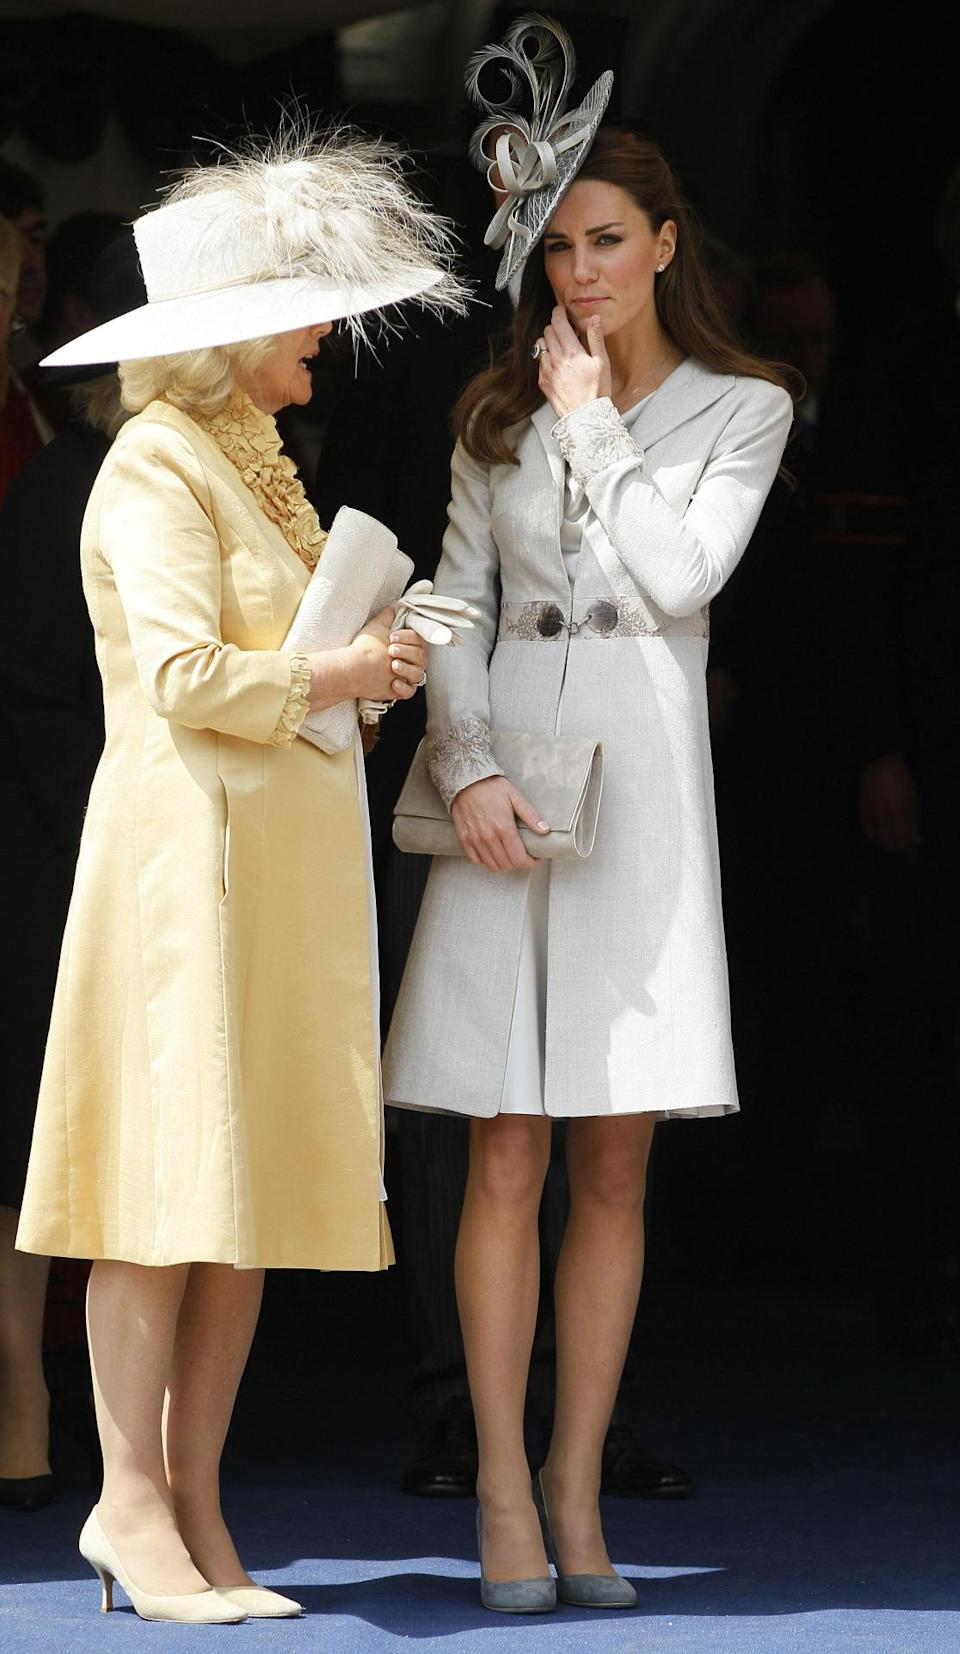 <p>For the Order of the Garter service, Kate chose a dove grey ensemble by Katherine Hooker with an ornate hat by milliner Rachel Trevor-Morgan. She teamed the look with suede pumps by Rupert Sanderson. </p><p><i>[Photo: PA]</i></p>